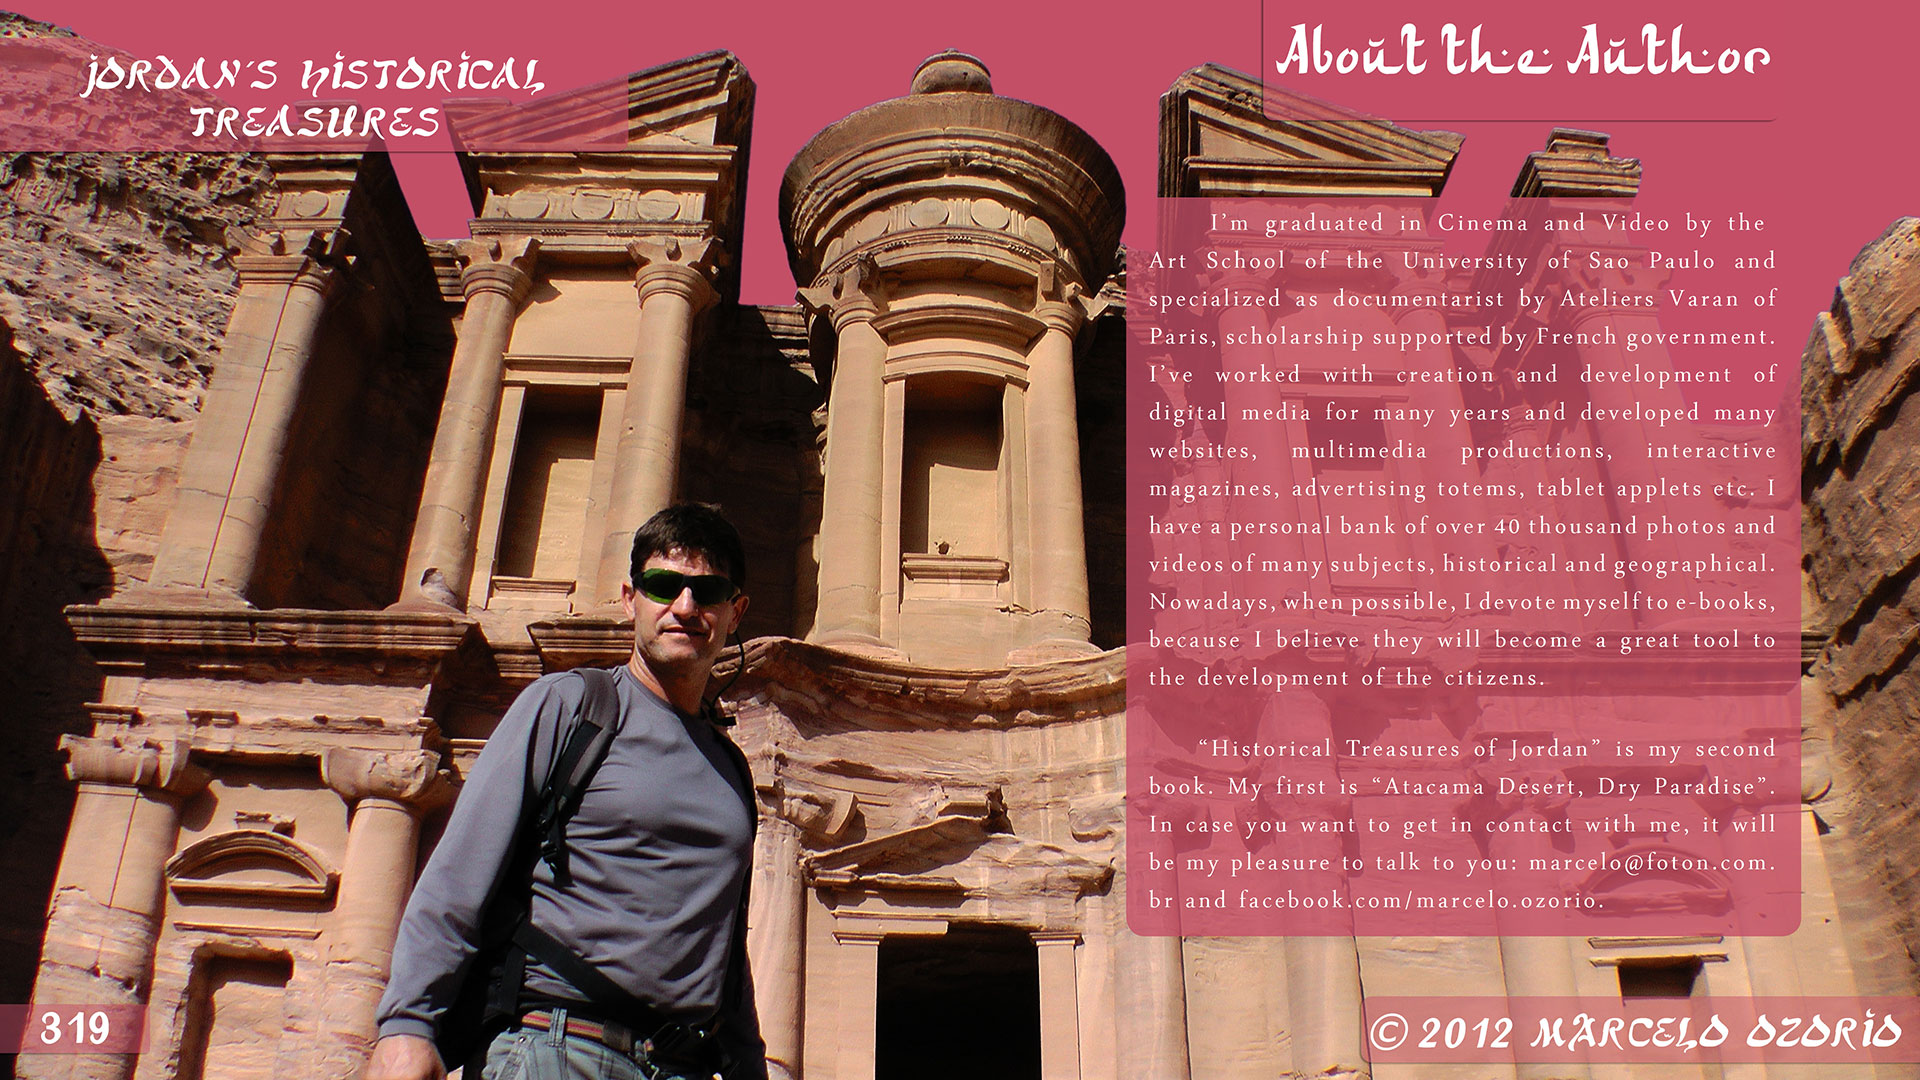 Marcelo Ozorio author book Jordan s Historical Treasures 2 - The Astonishing Treasure at Petra - Jordan